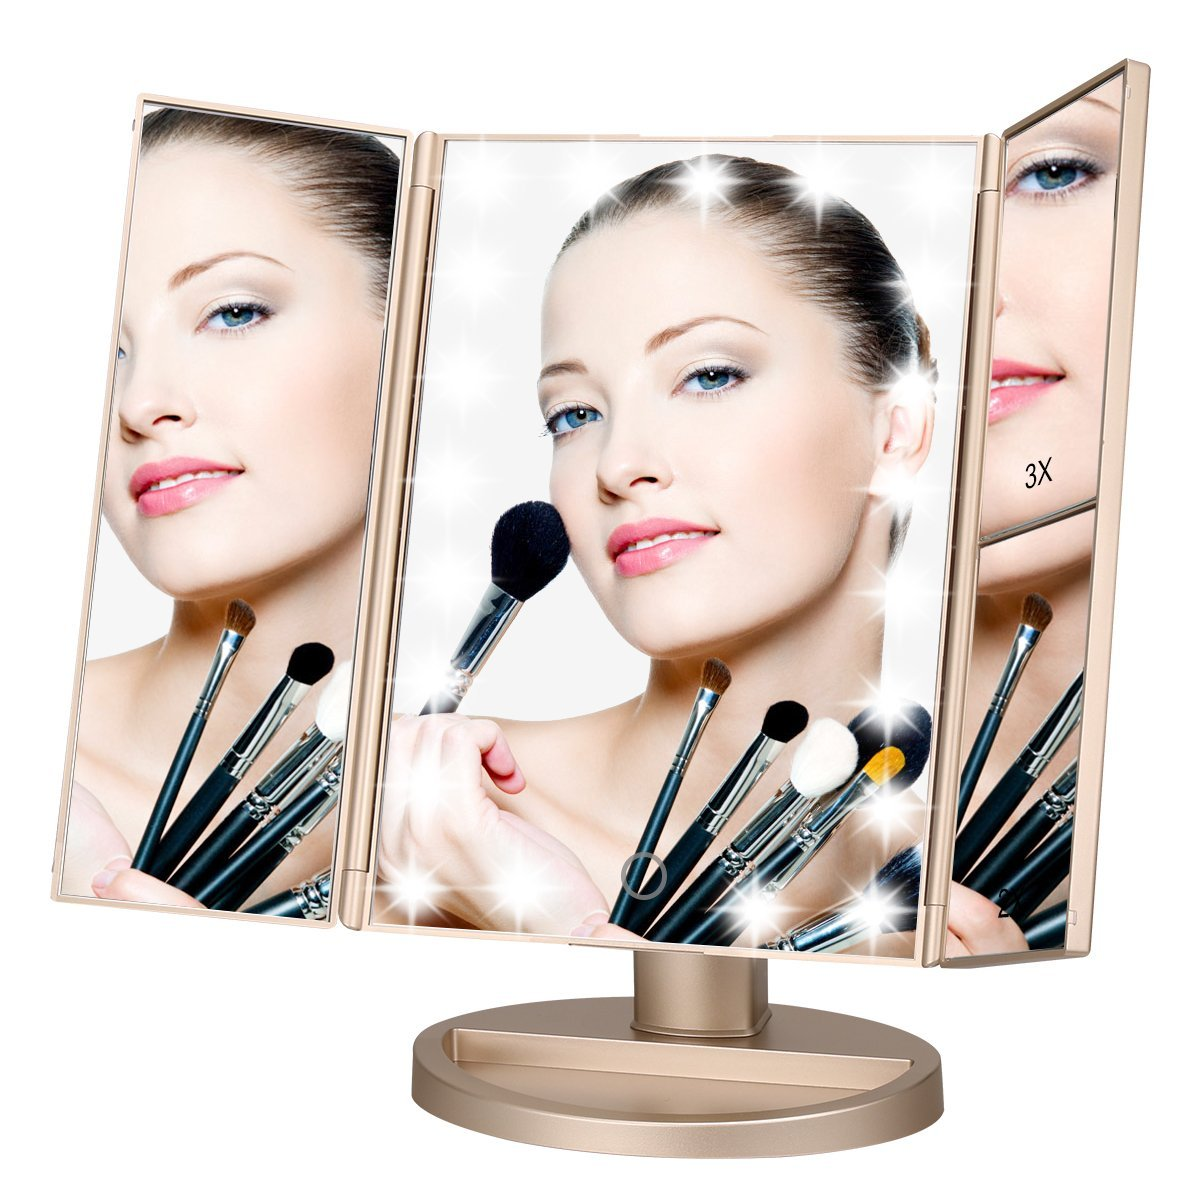 7 Best Lighted Makeup Mirrors Reviewed